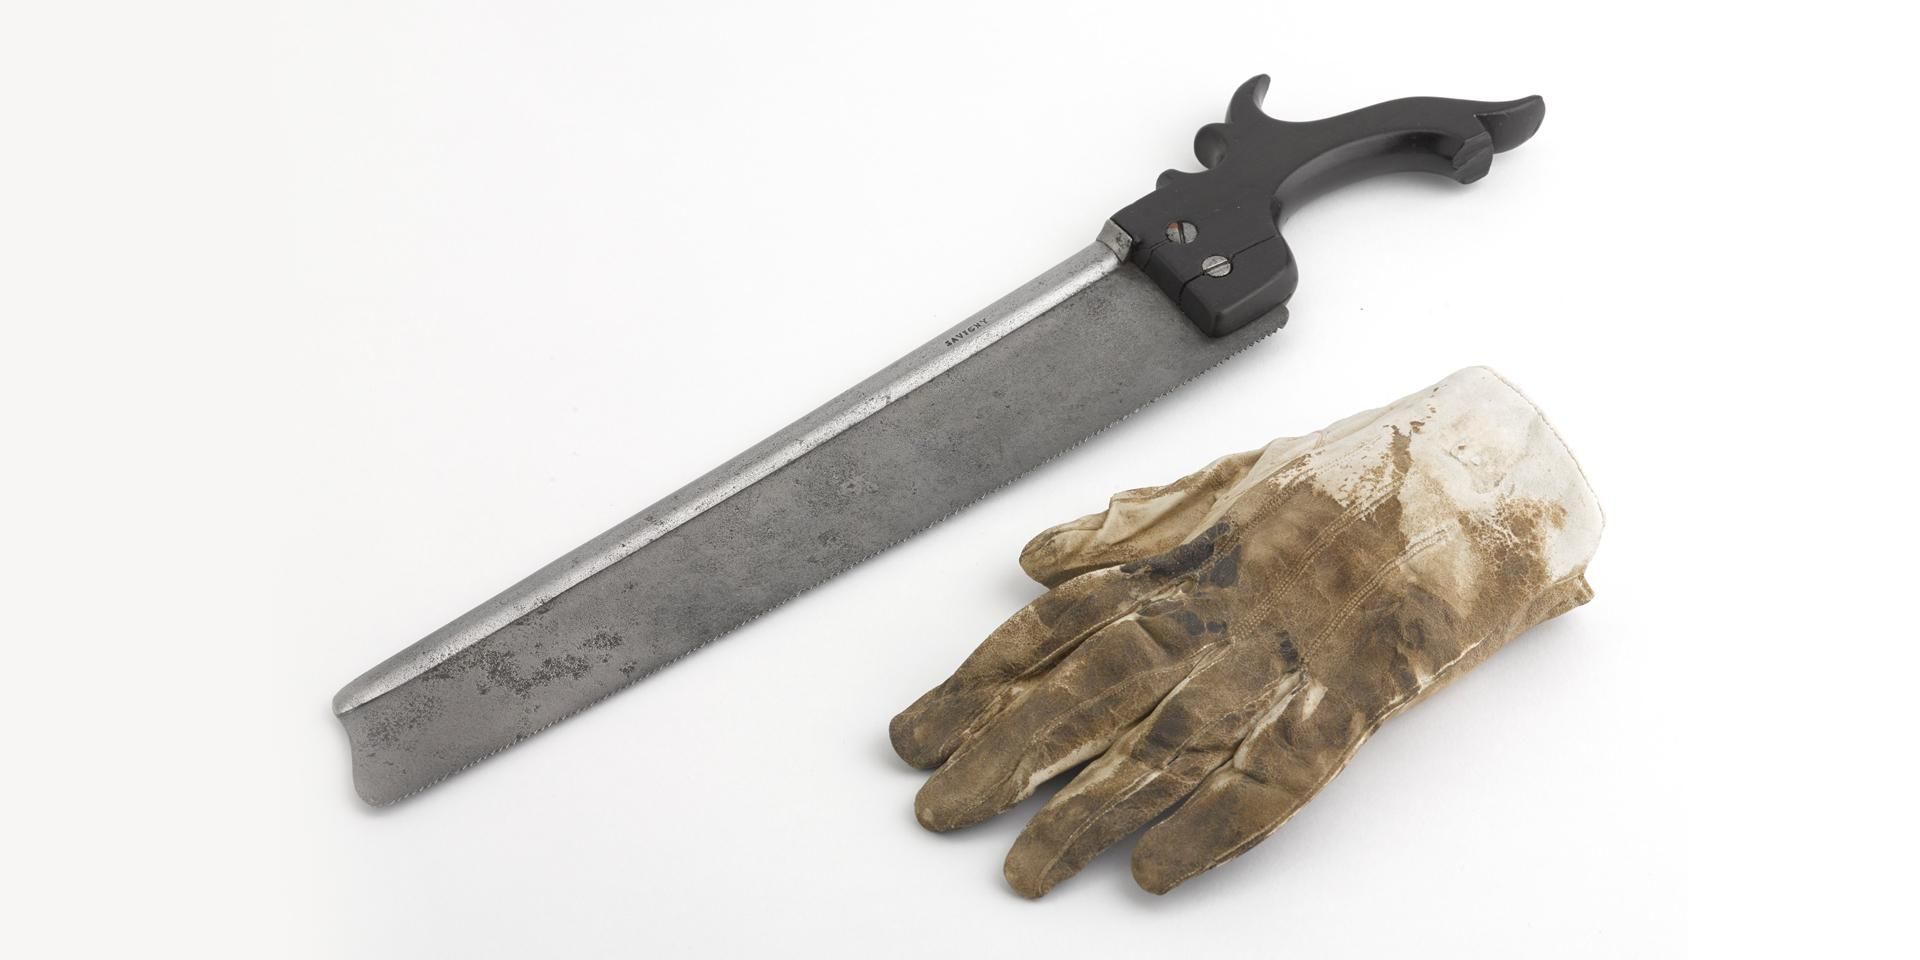 Surgical saw and blood-stained glove used to amputate  the leg of Lord Uxbridge.